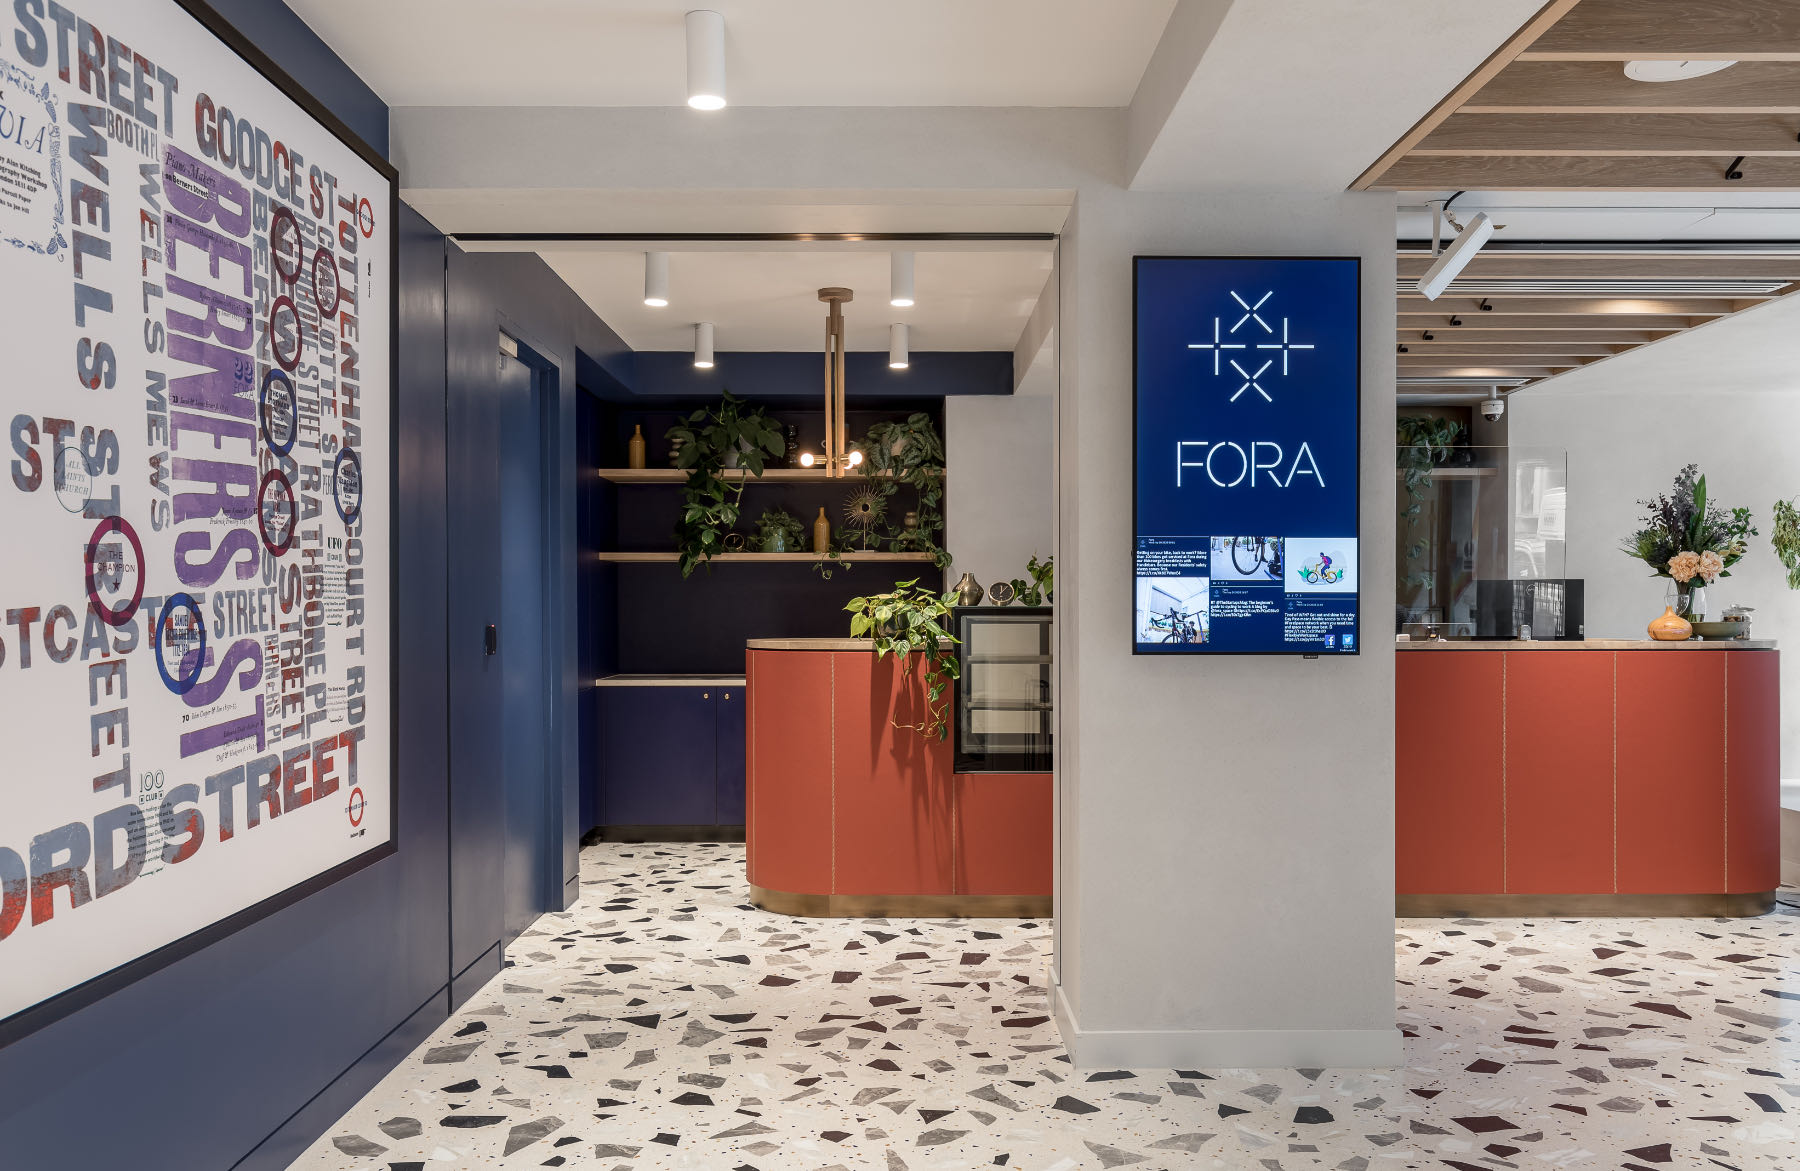 fora-london-office-1